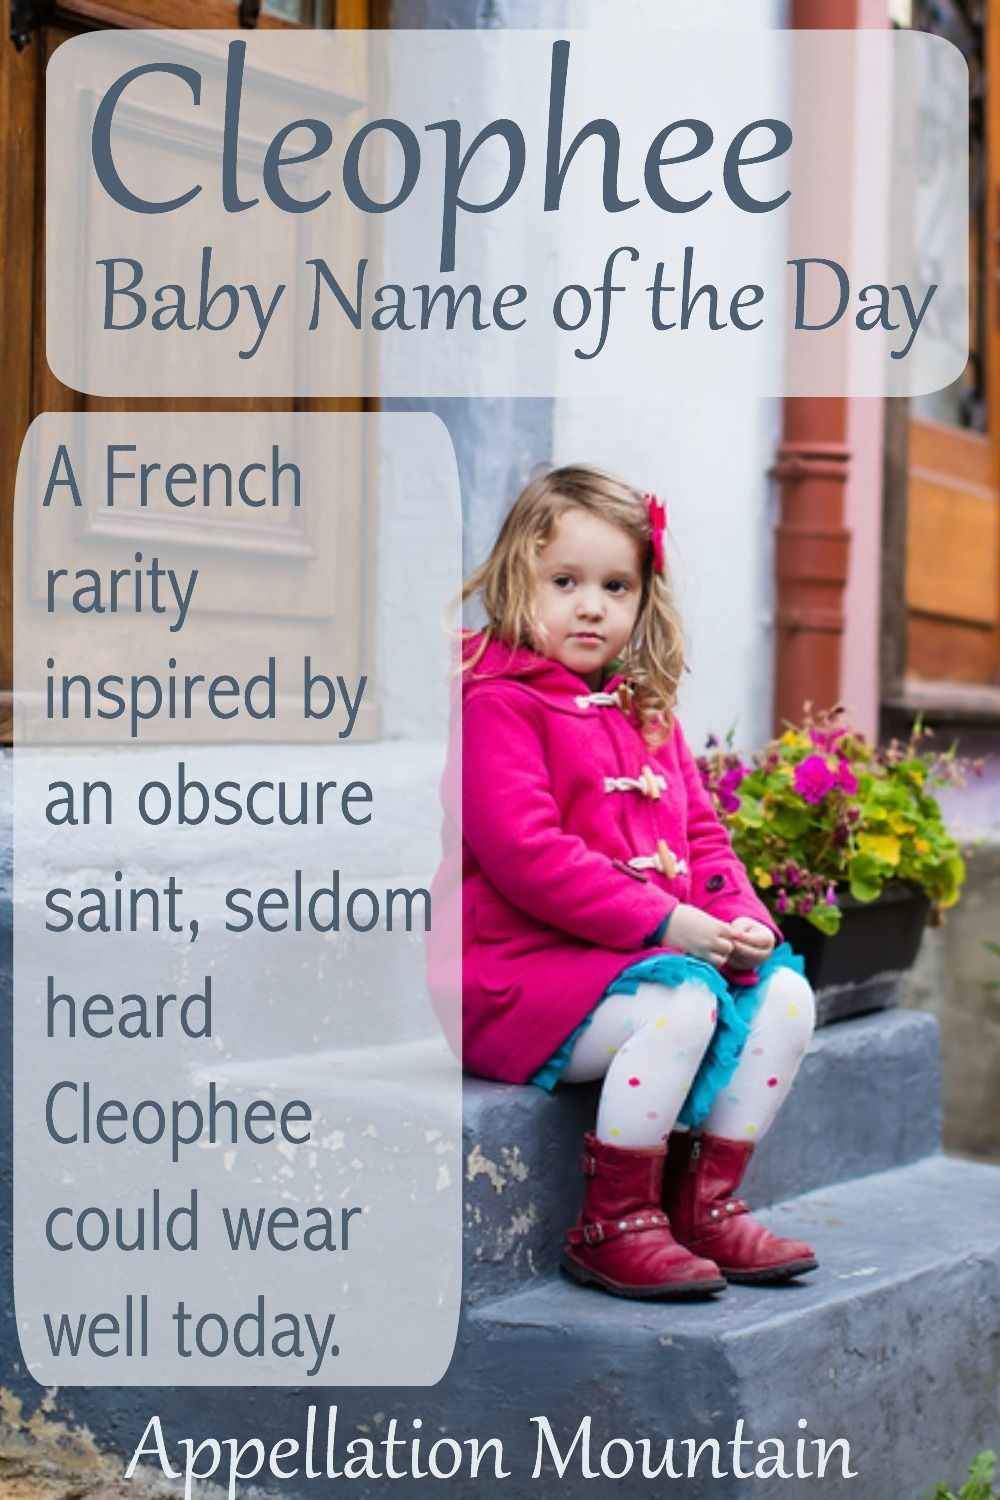 Modern baby name trends